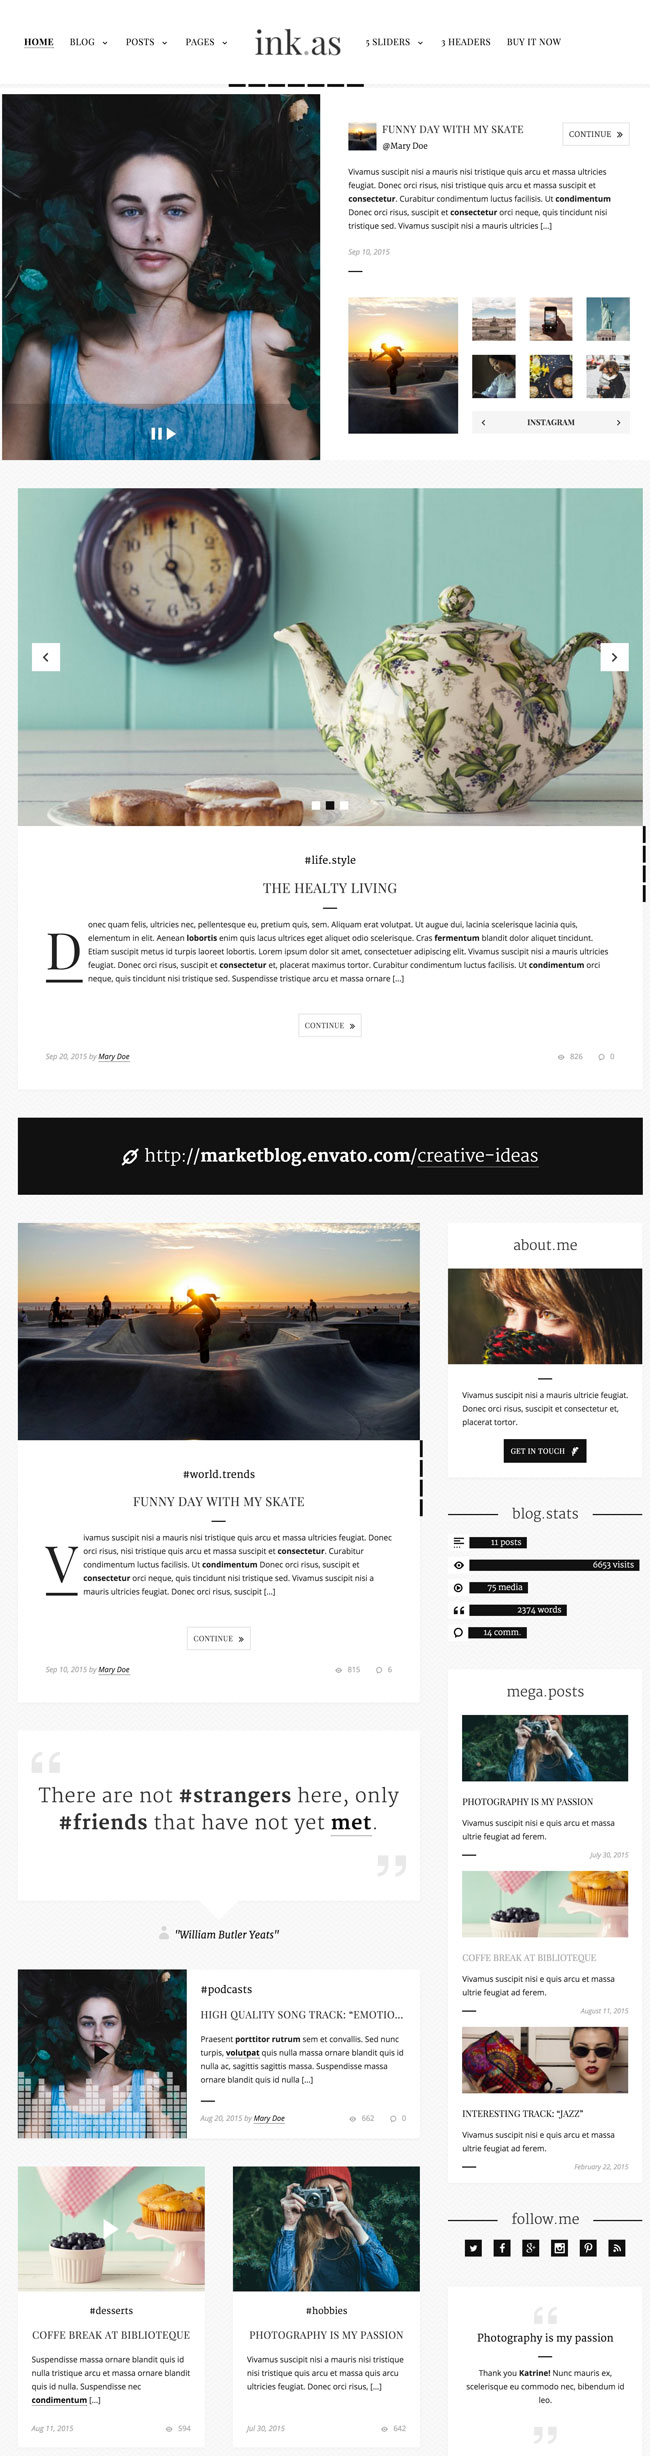 Inkas-The-Personal-Blog-Wordpress-Theme